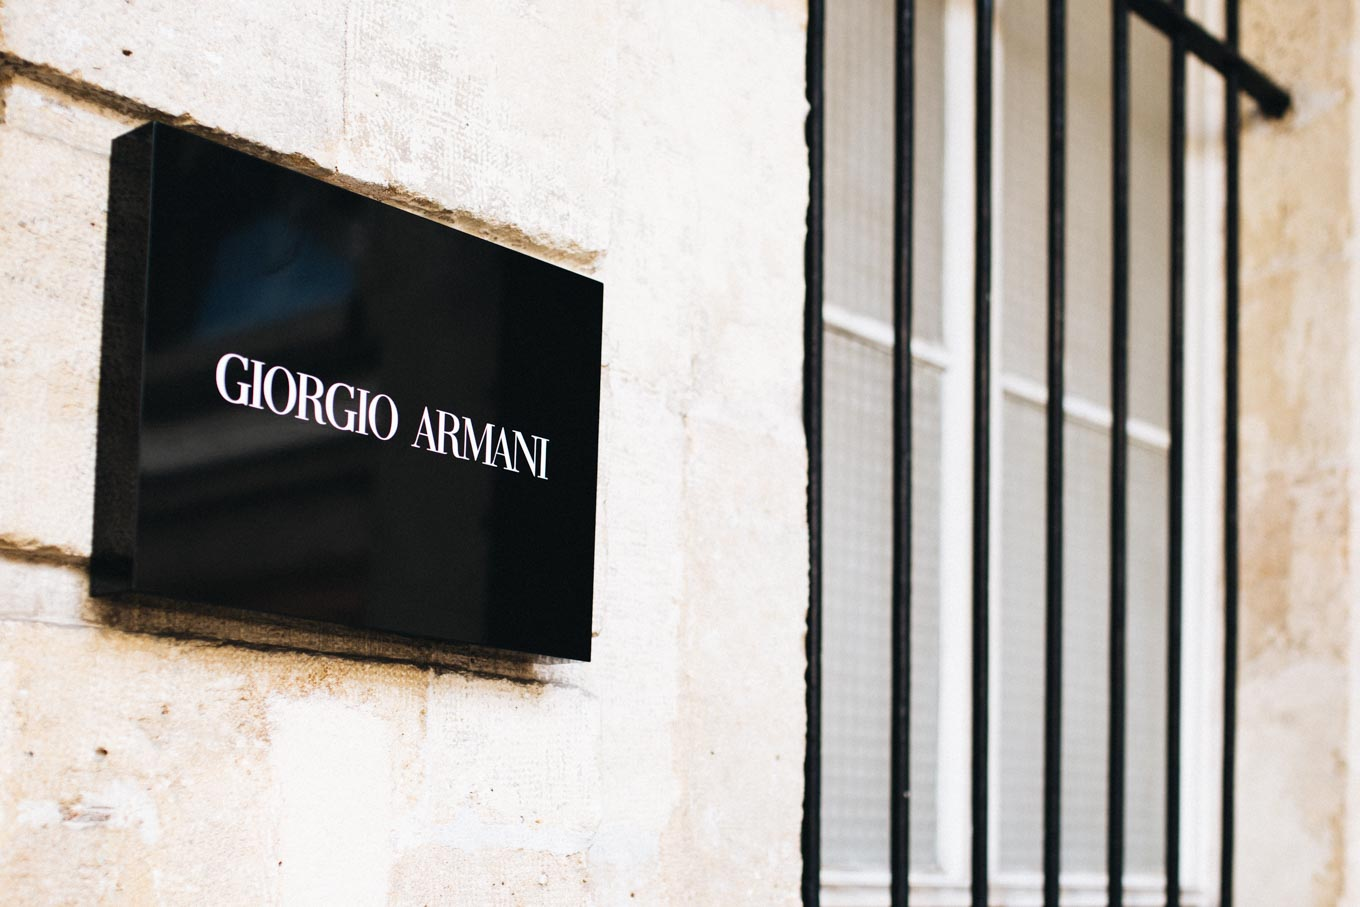 Beauty News: Armani Ecstasy Shine Lipstick - 24 Hours in Paris with Armani Beauty | you rock my life